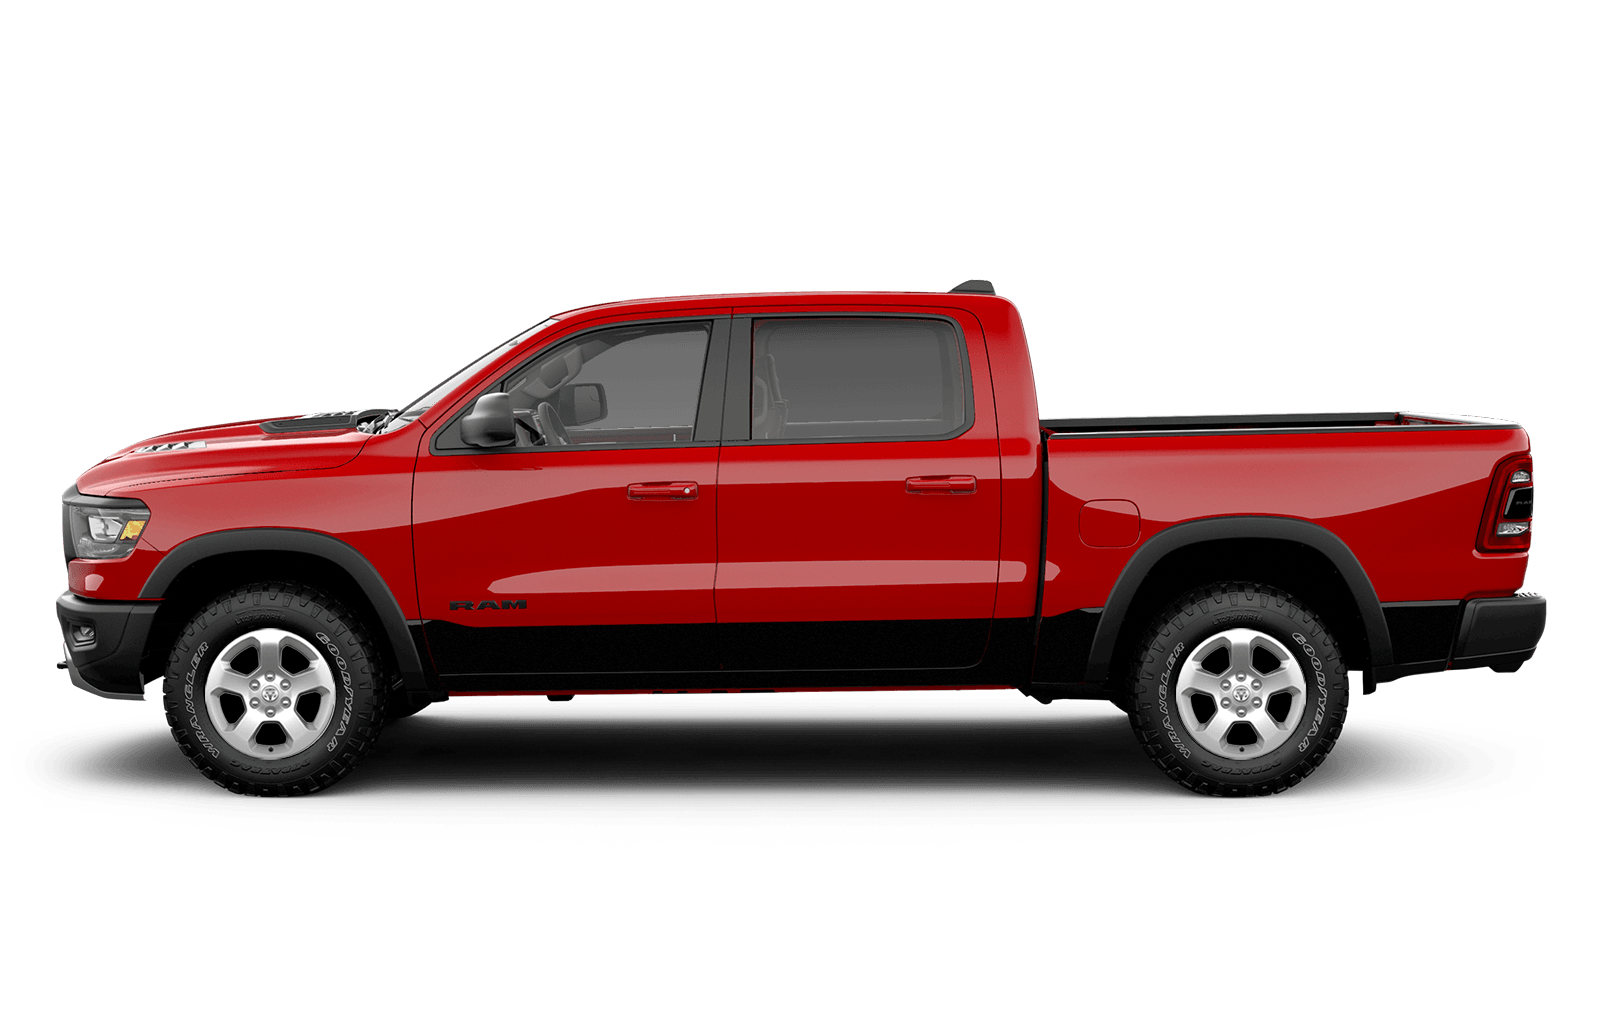 2019 Ram 1500 18 inch aluminum wheels on red truck available for Tradesman